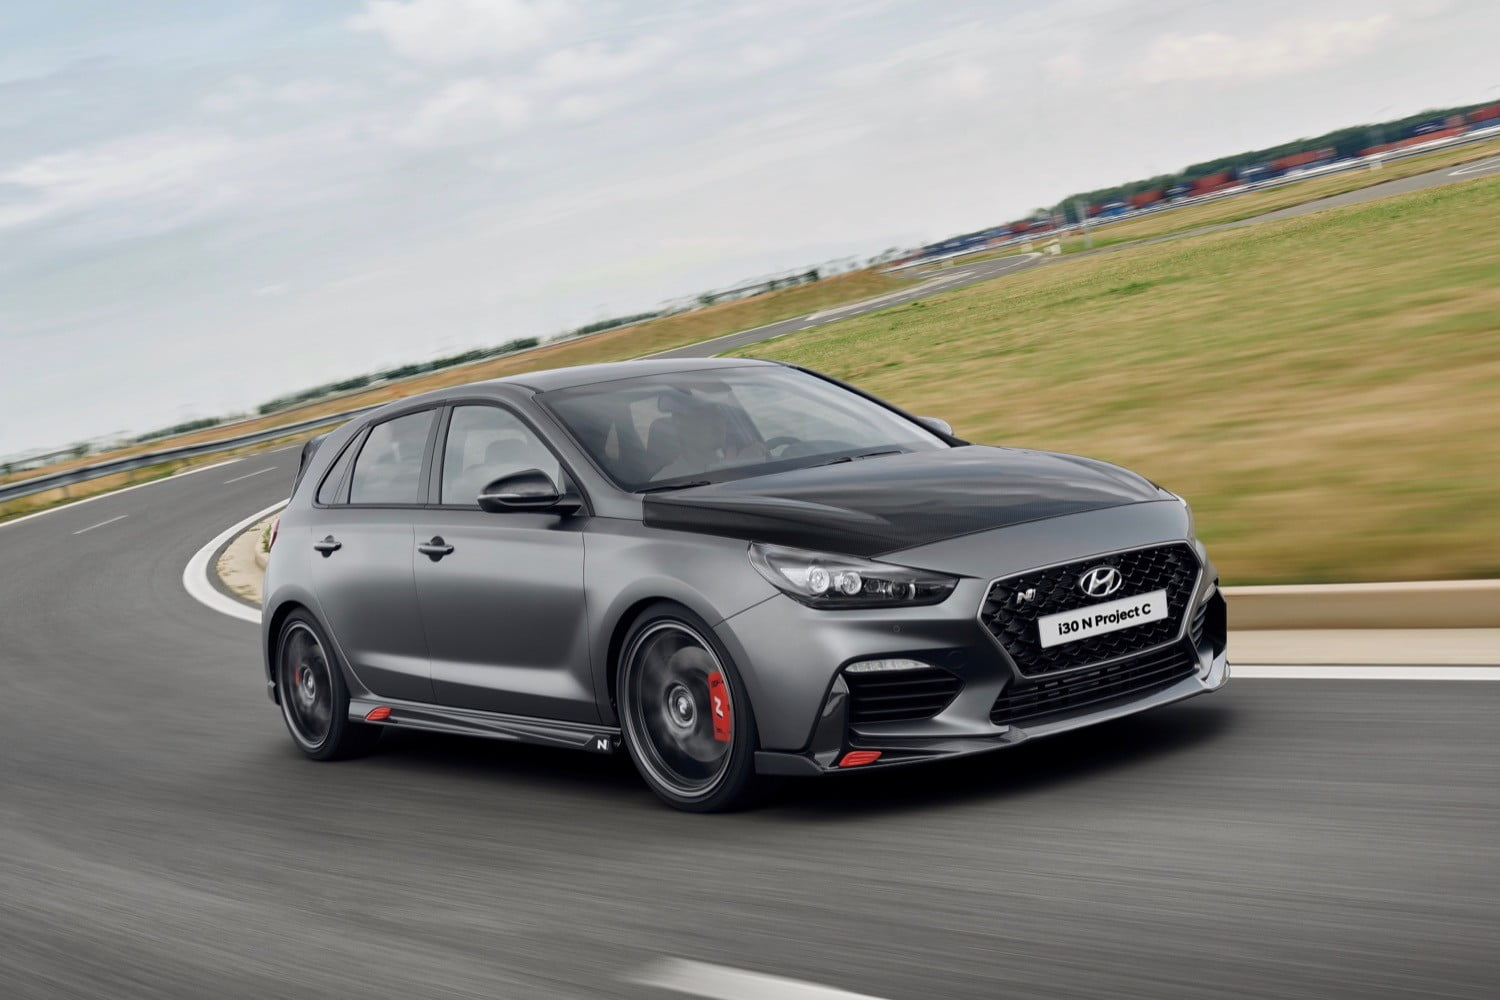 Limited-edition Hyundai i30 N Project C is Korea's hottest hatch